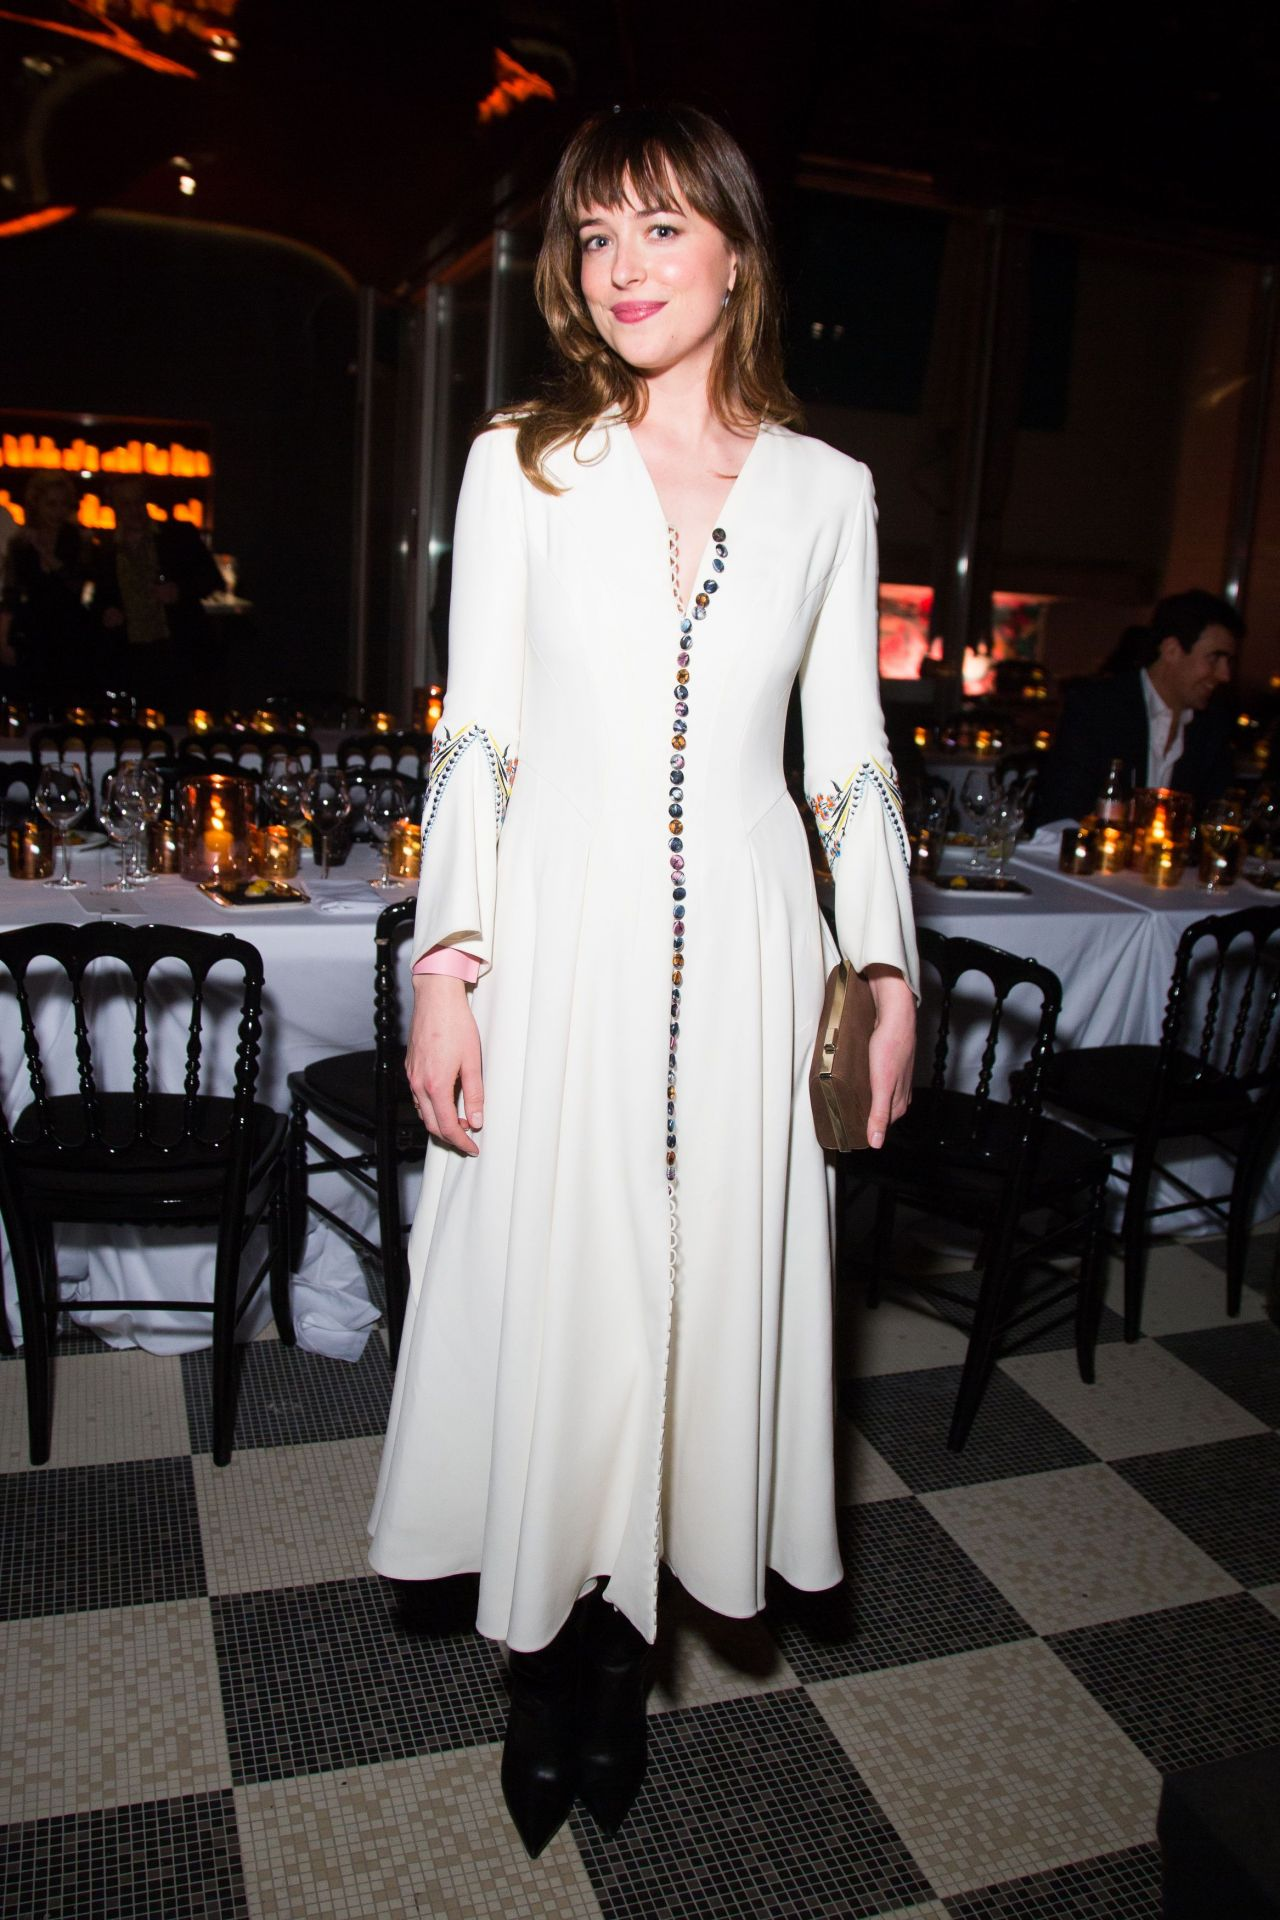 Dakota Johnson - Christian Dior Private Dinner in Paris, March 2015